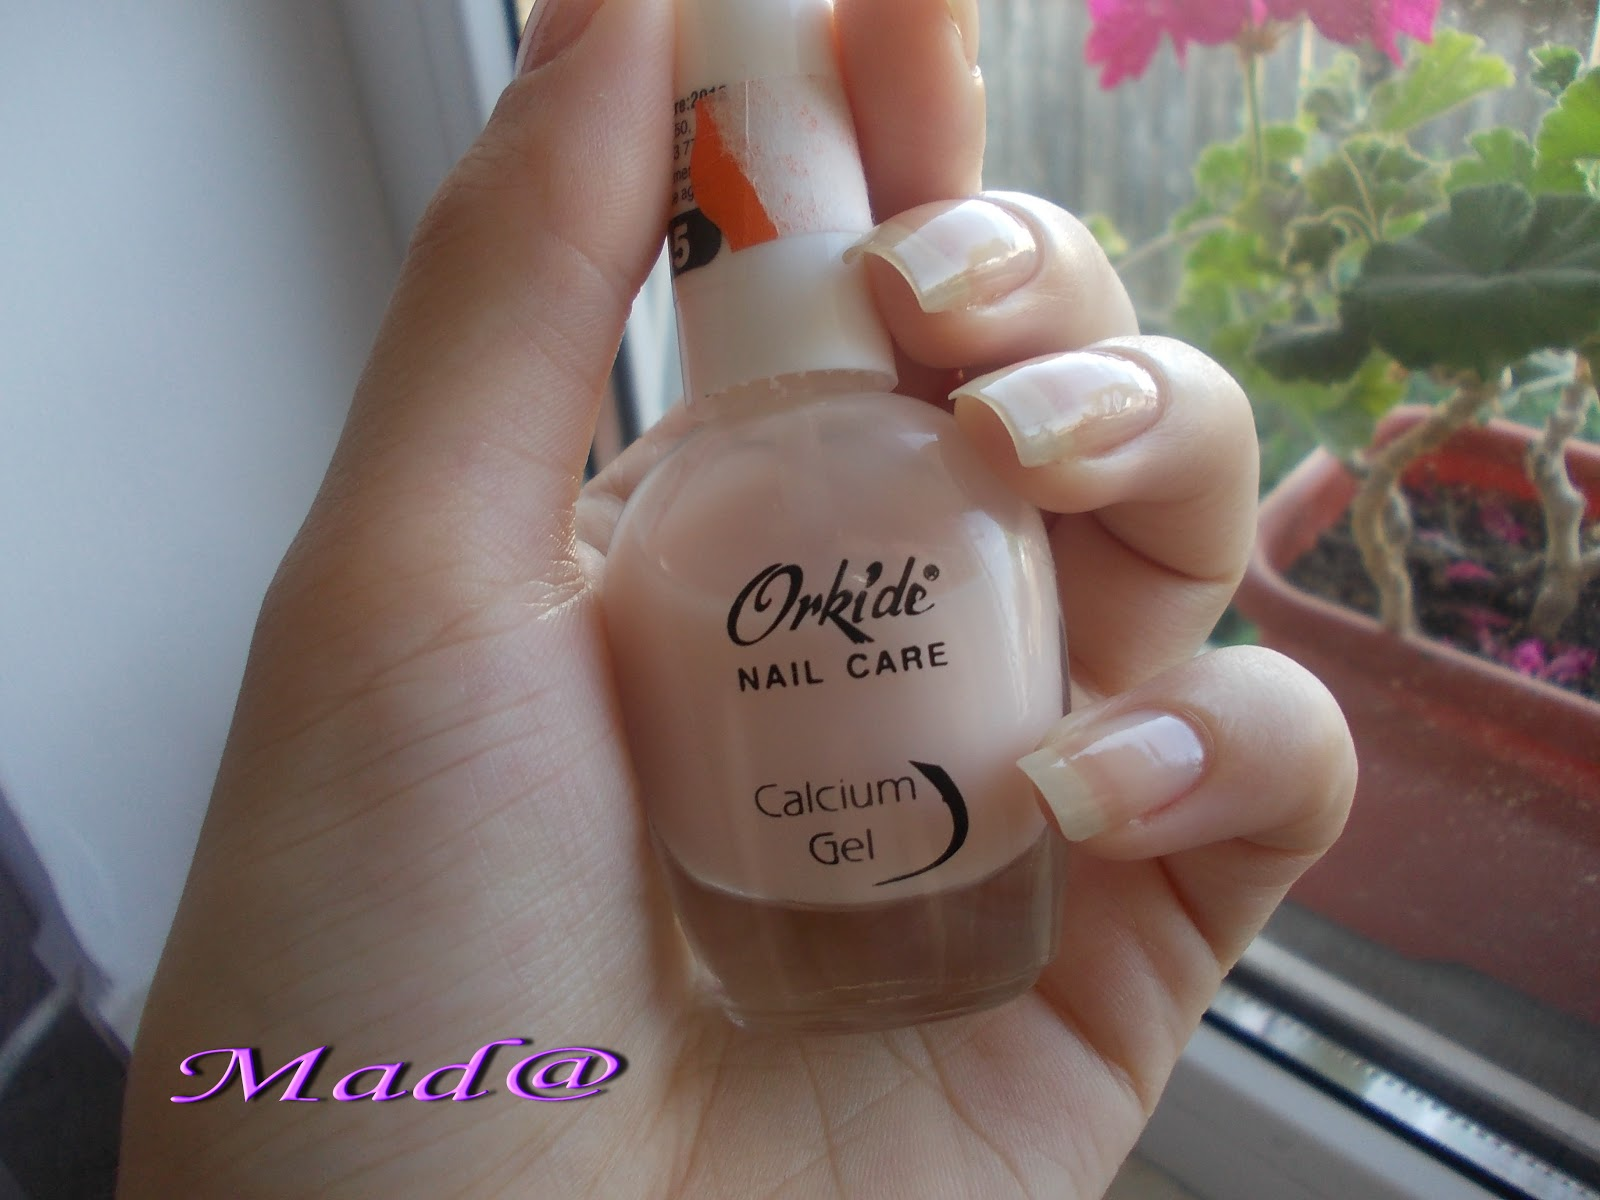 Orkide nail care calcium gel – Great photo blog about manicure 2017